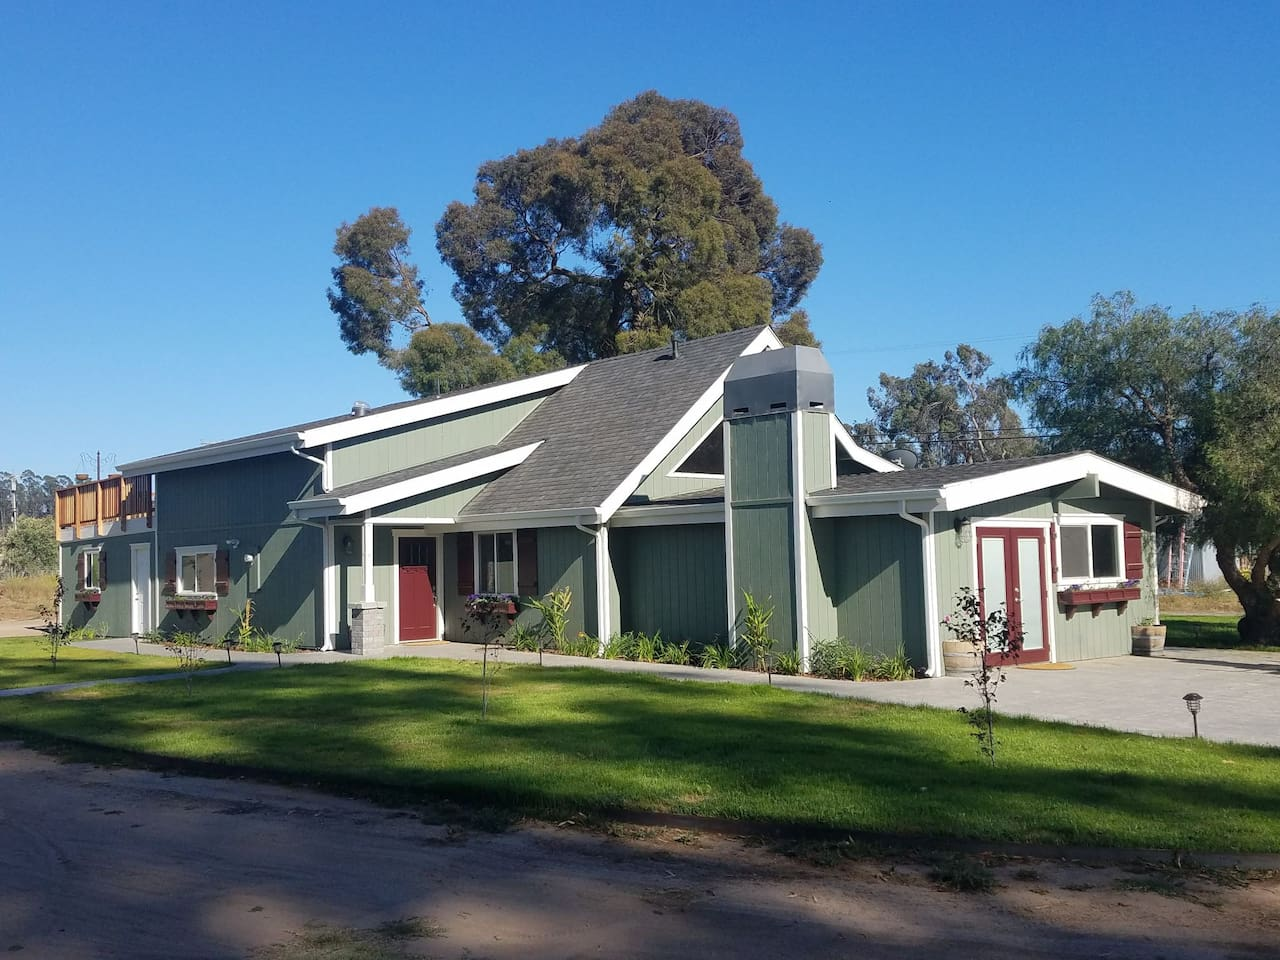 The perfect place to gather friends and family for a wonderful Central Coast California vacation